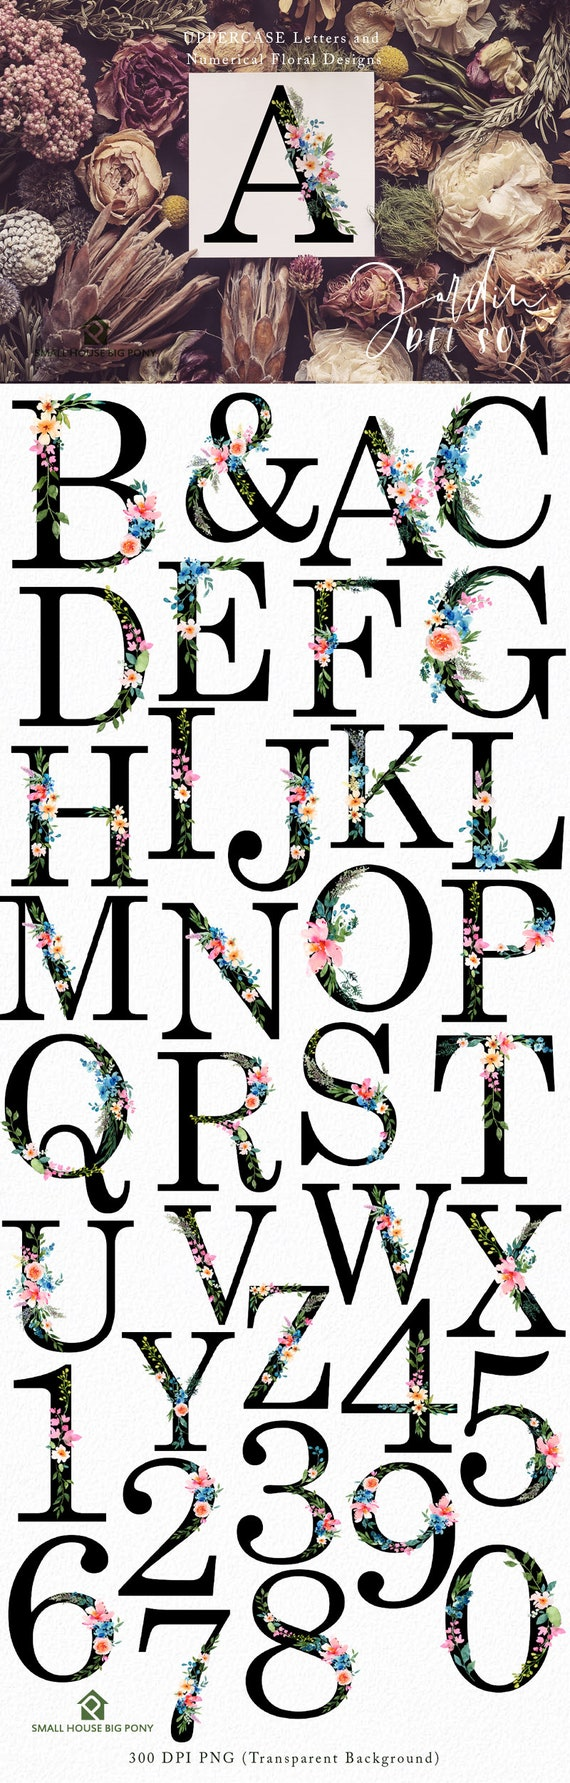 UPPERCASE Floral Alphabets, Numbers and Ampersand-  Jardin Del Sol Floral Alphabet, Floral Numbers and Ampersand